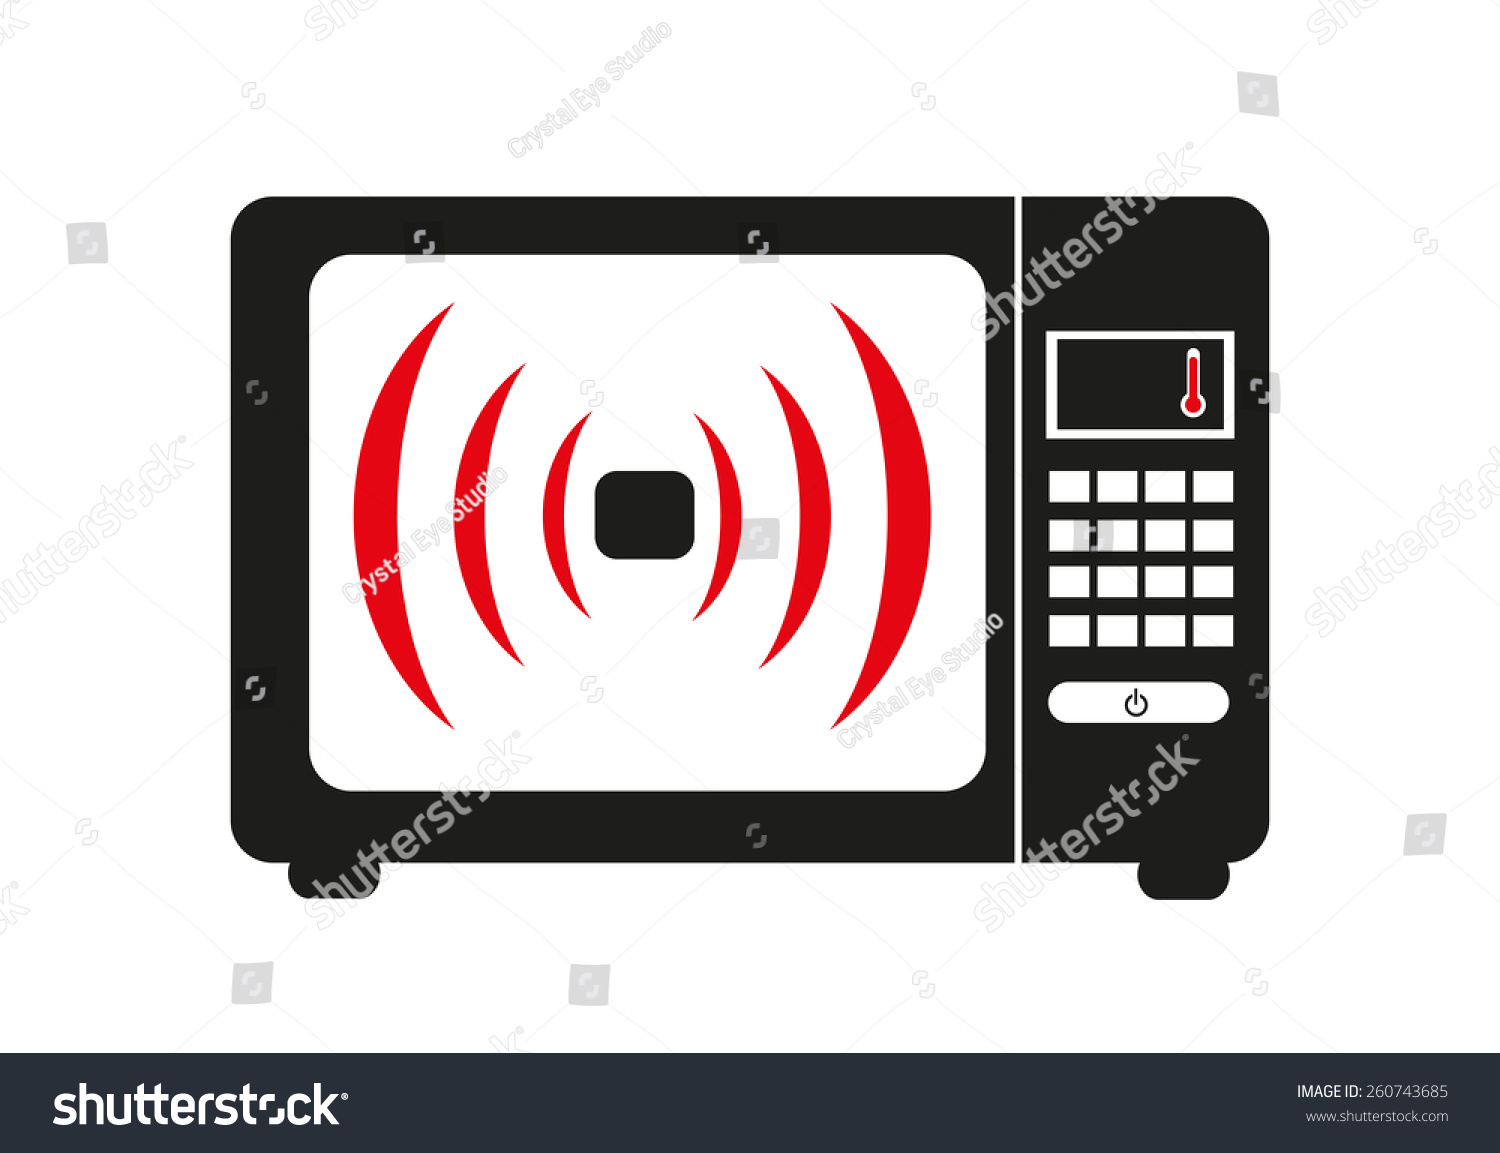 Microwaveable icon microwavesafe digital microwave graphics stock microwaveable icon and microwave safe digital microwave graphics editable vector illustration and large jpg biocorpaavc Images